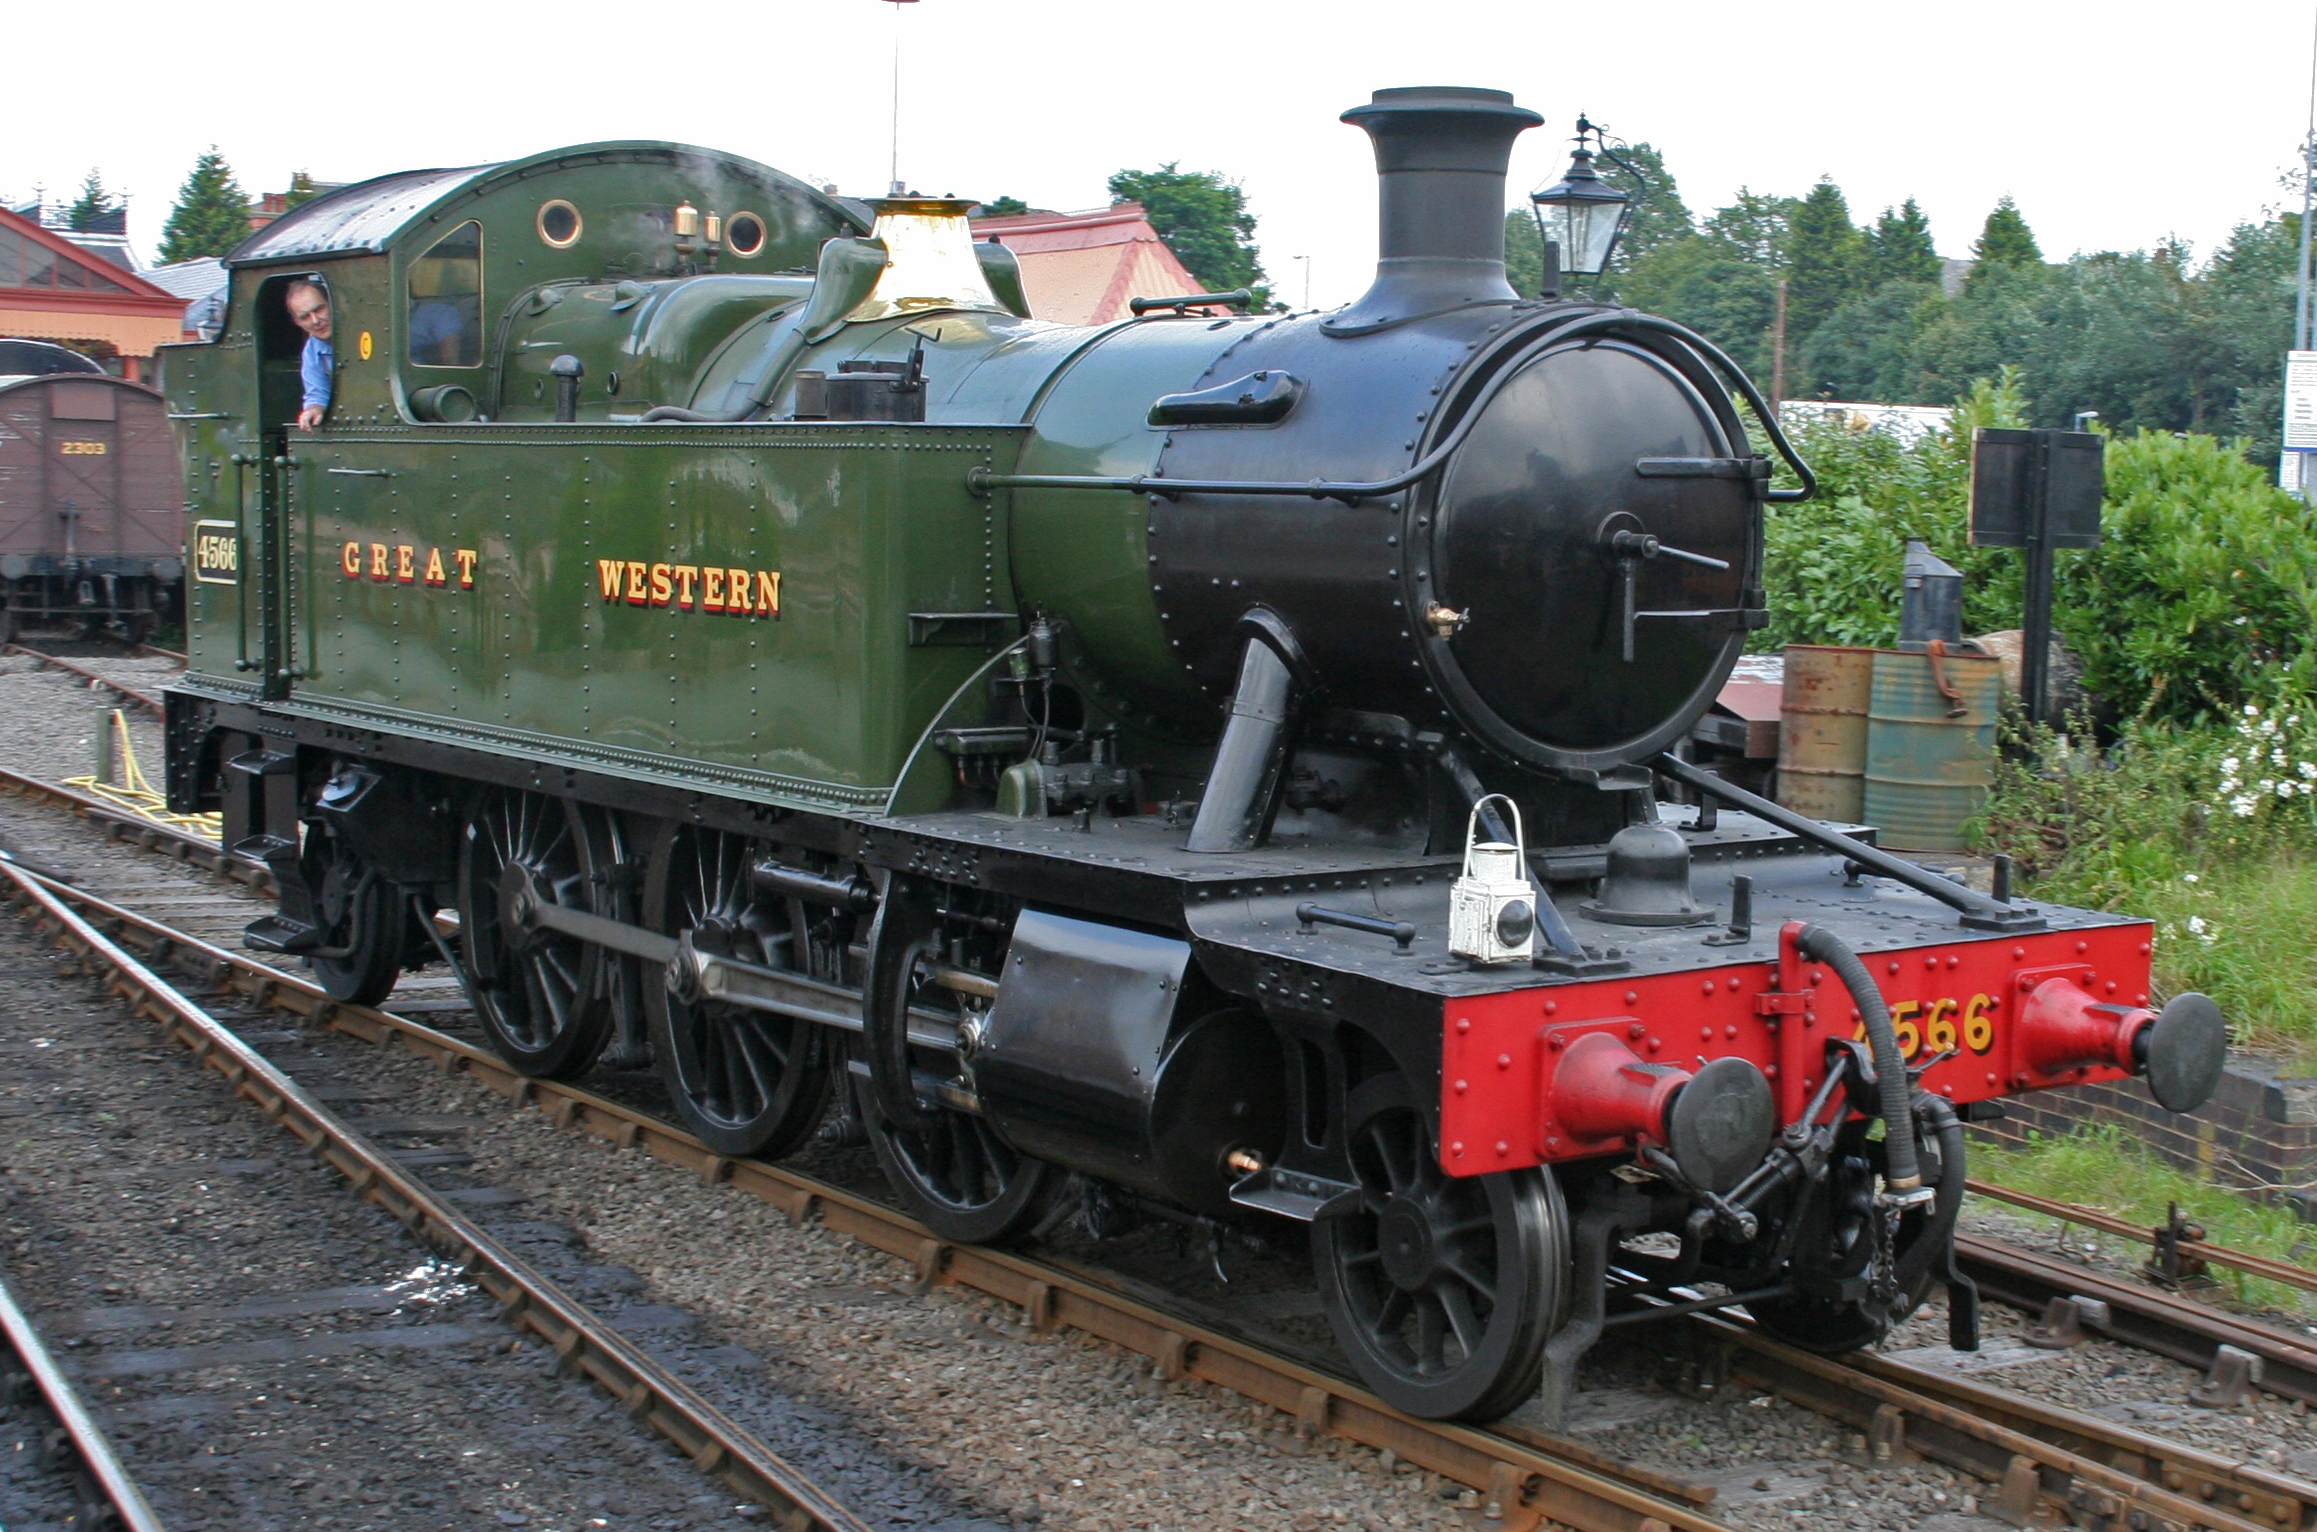 No 4566 at the Severn Valley Railway in August 2007. © Tony Hisgett